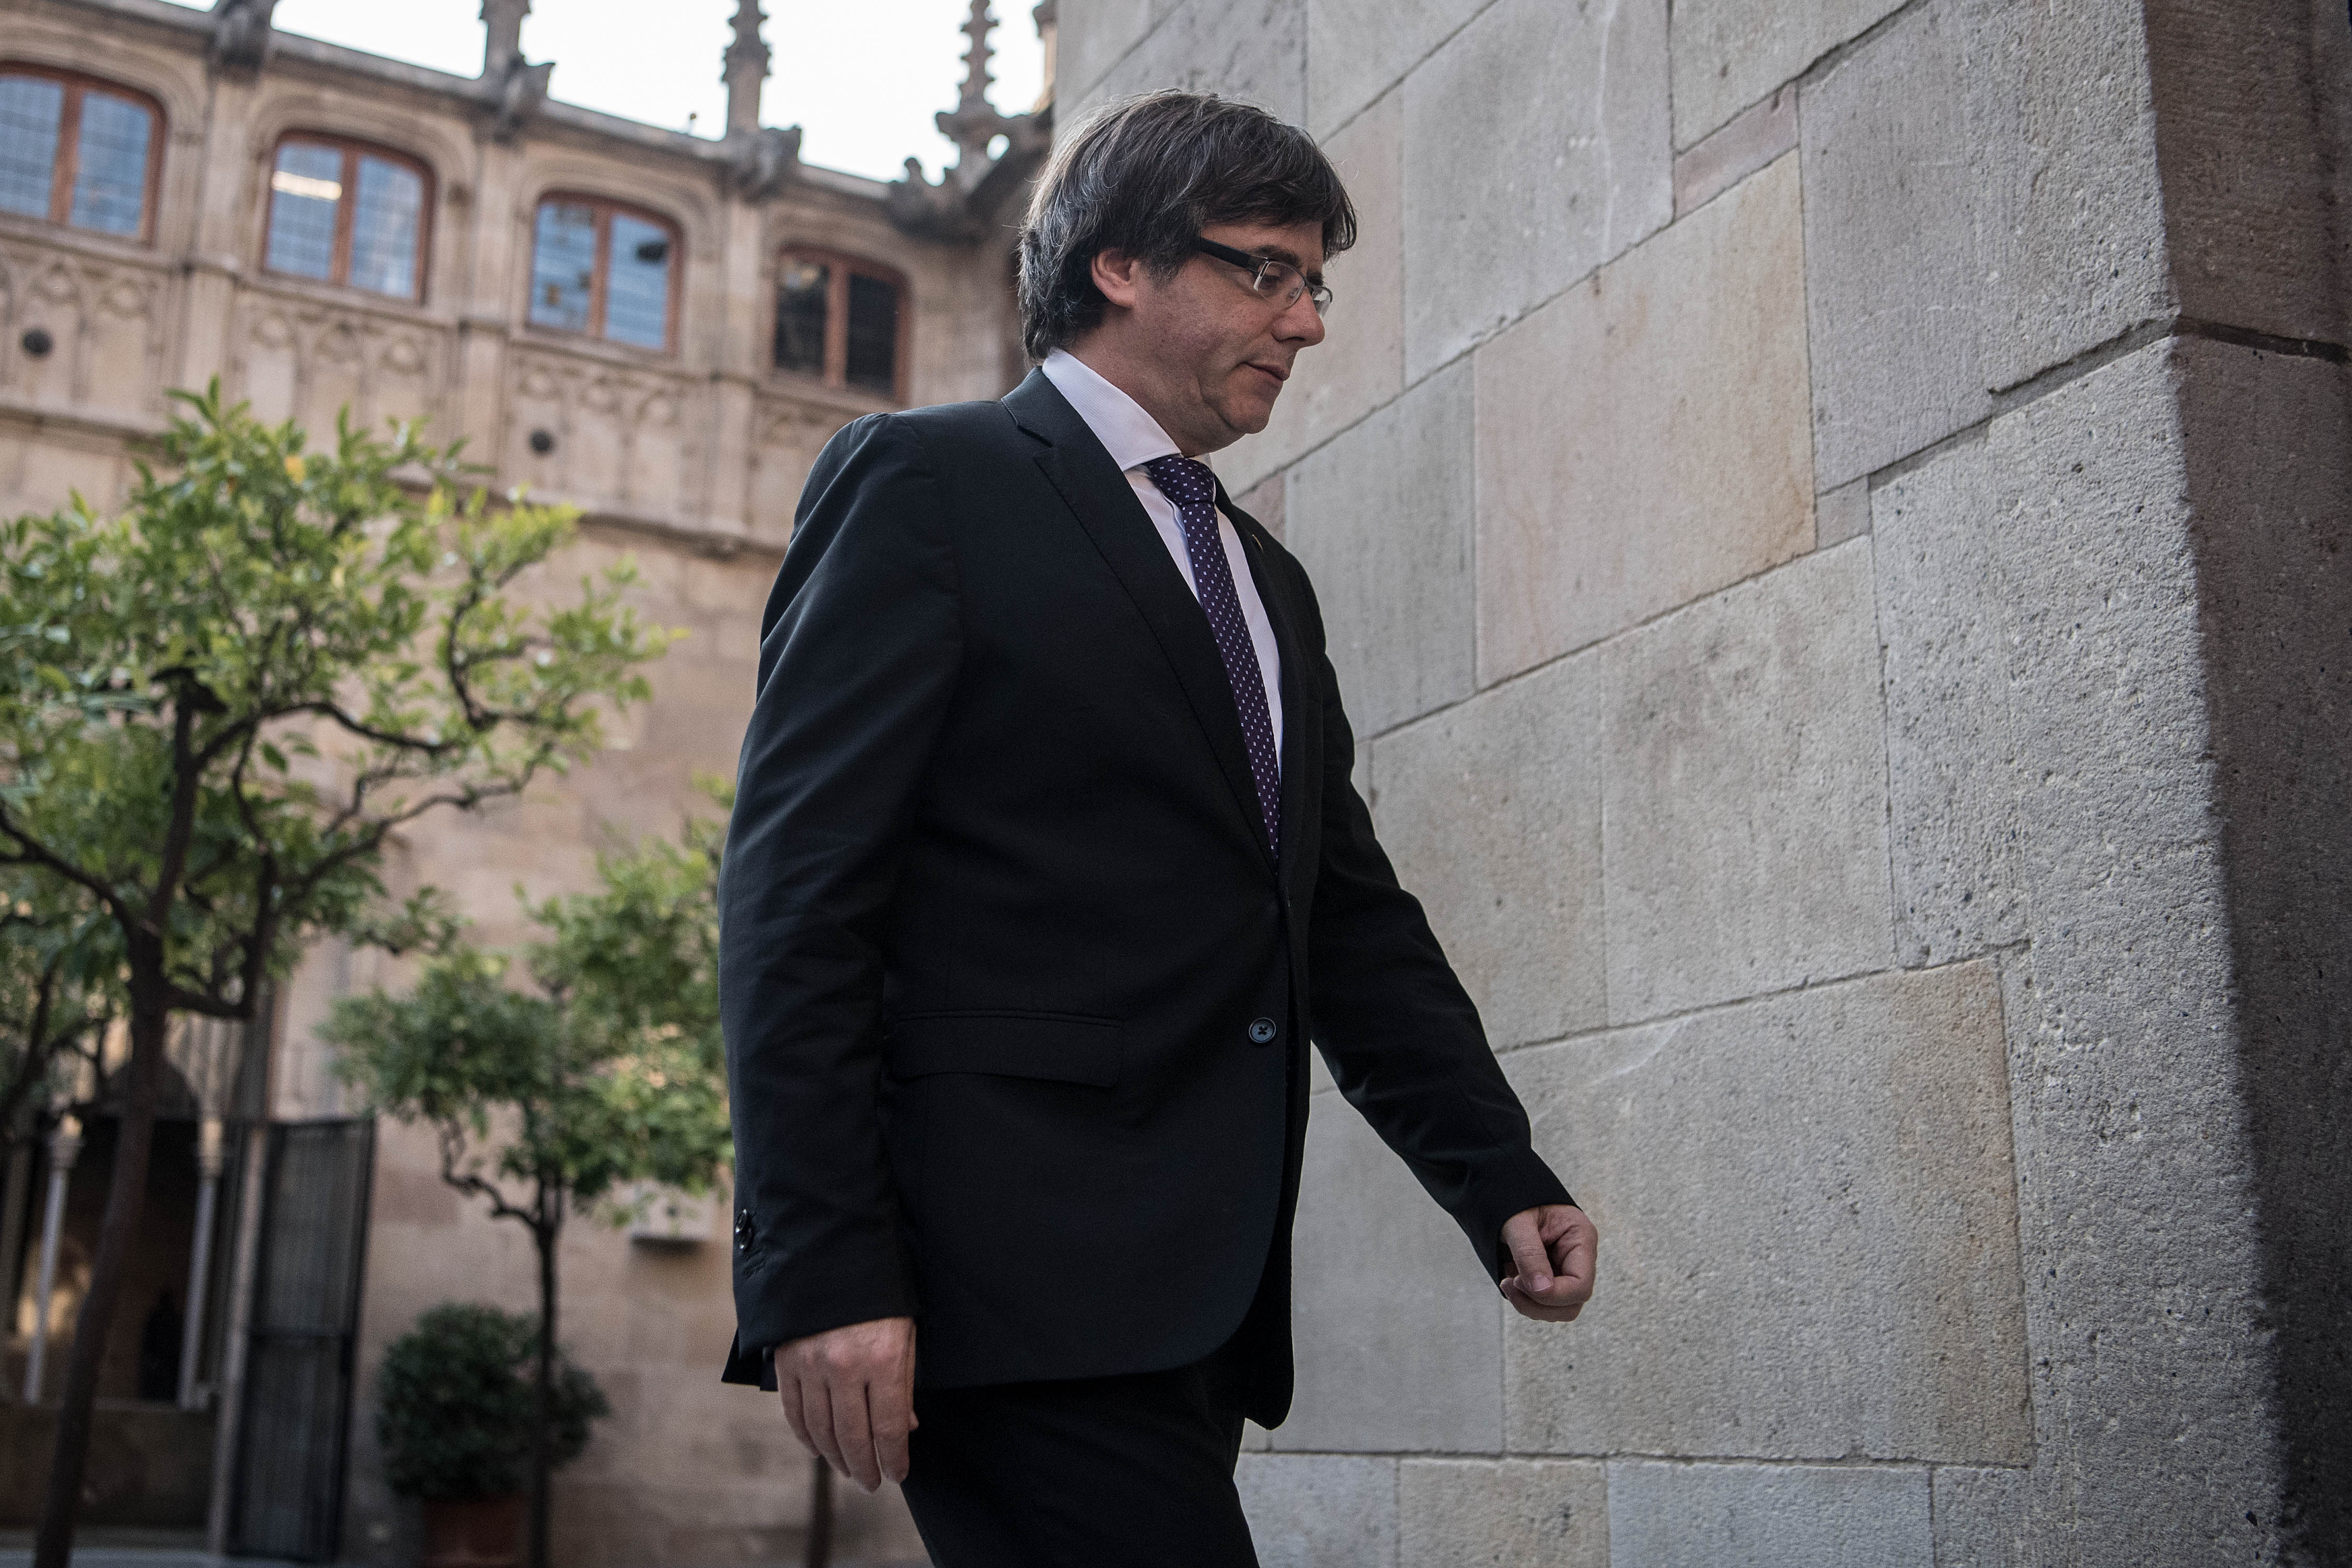 Carles Puigdemont arrives at a government meeting at the Palau de la Generalitat building on October 17, 2017 in Barcelona, Spain.